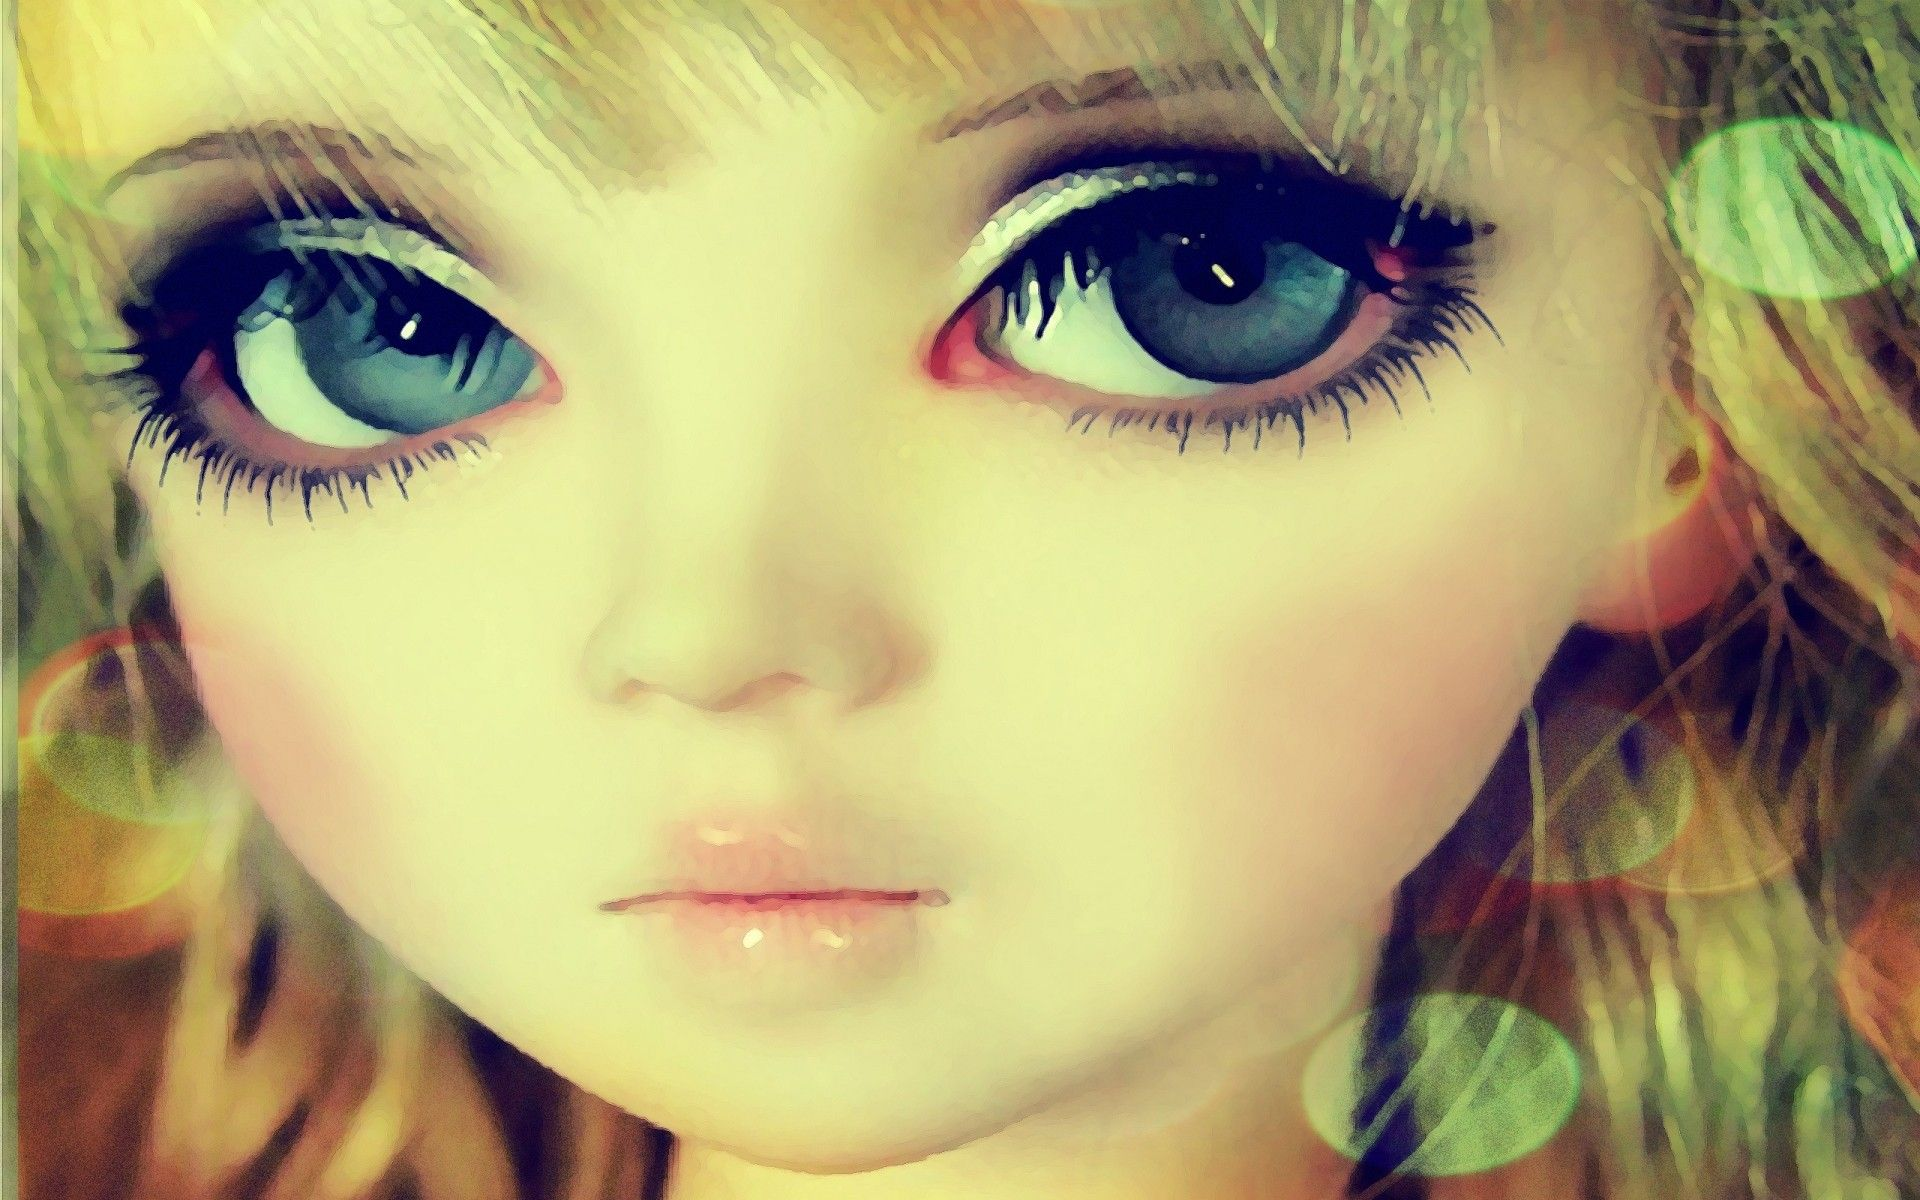 cute dolls wallpapers : find best latest cute dolls wallpapers in hd